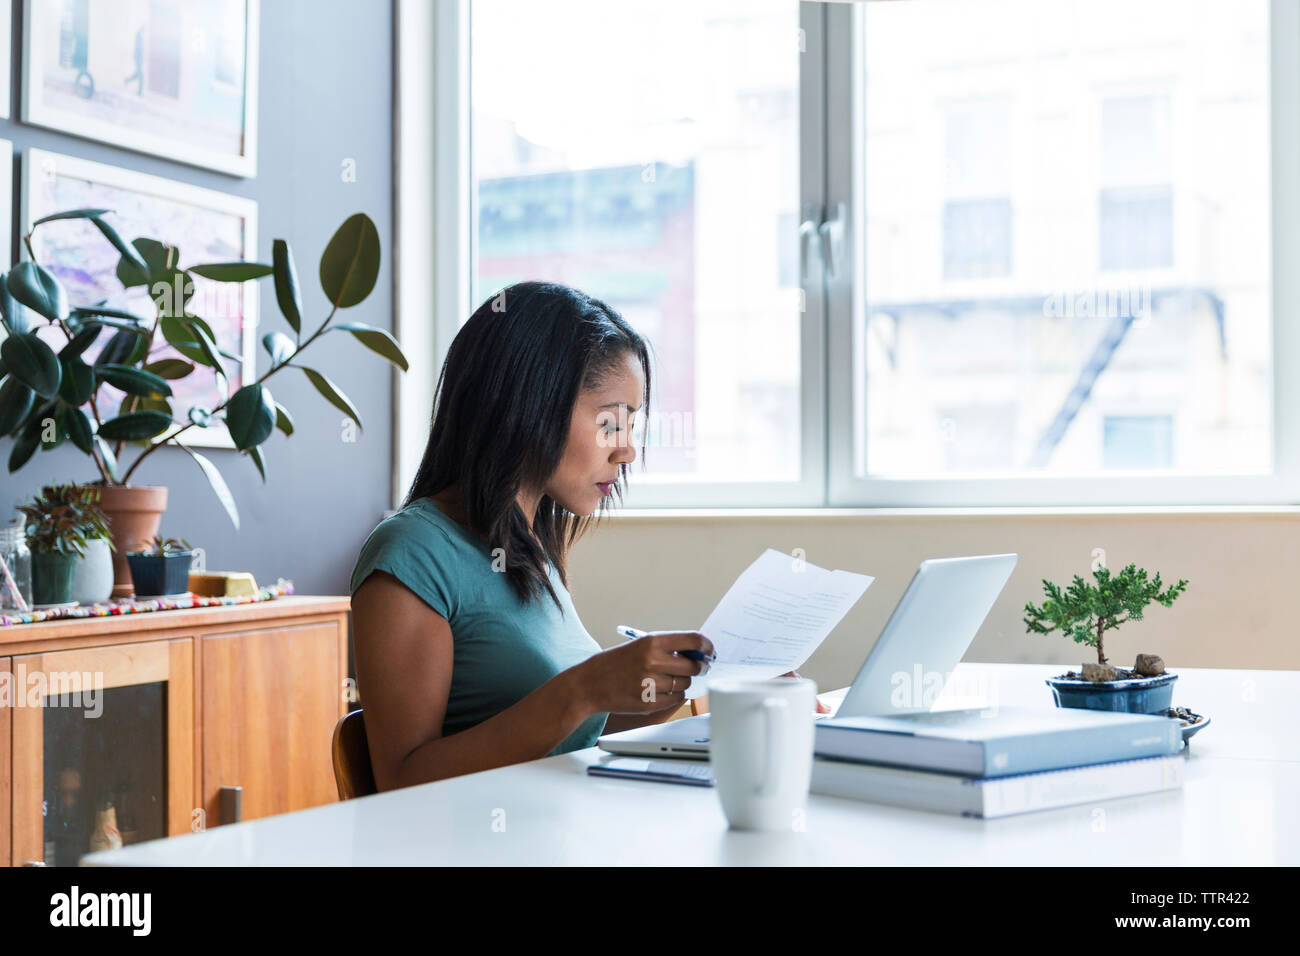 Serious woman working at home office - Stock Image